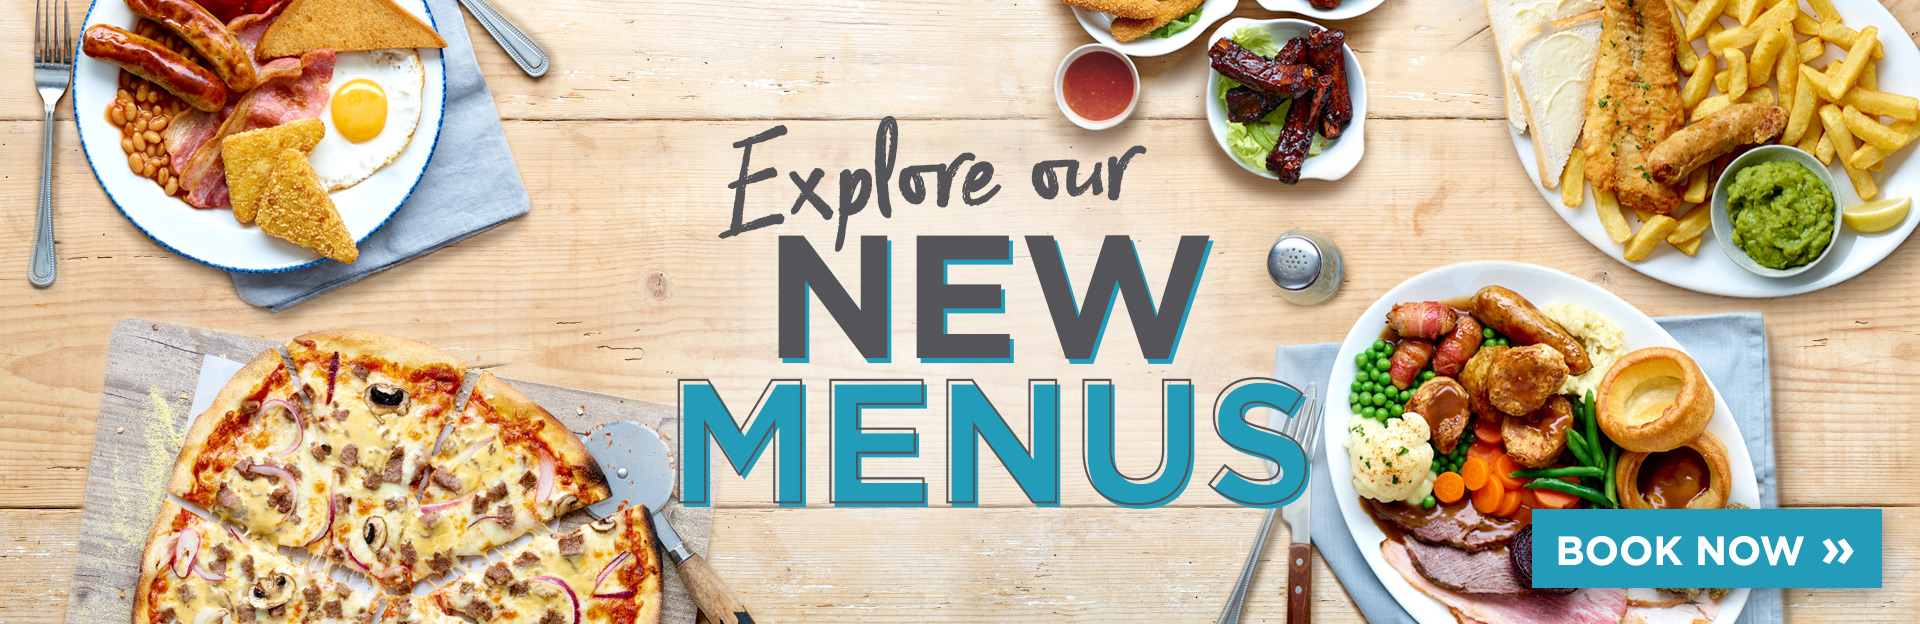 New menu at The Gap Inn